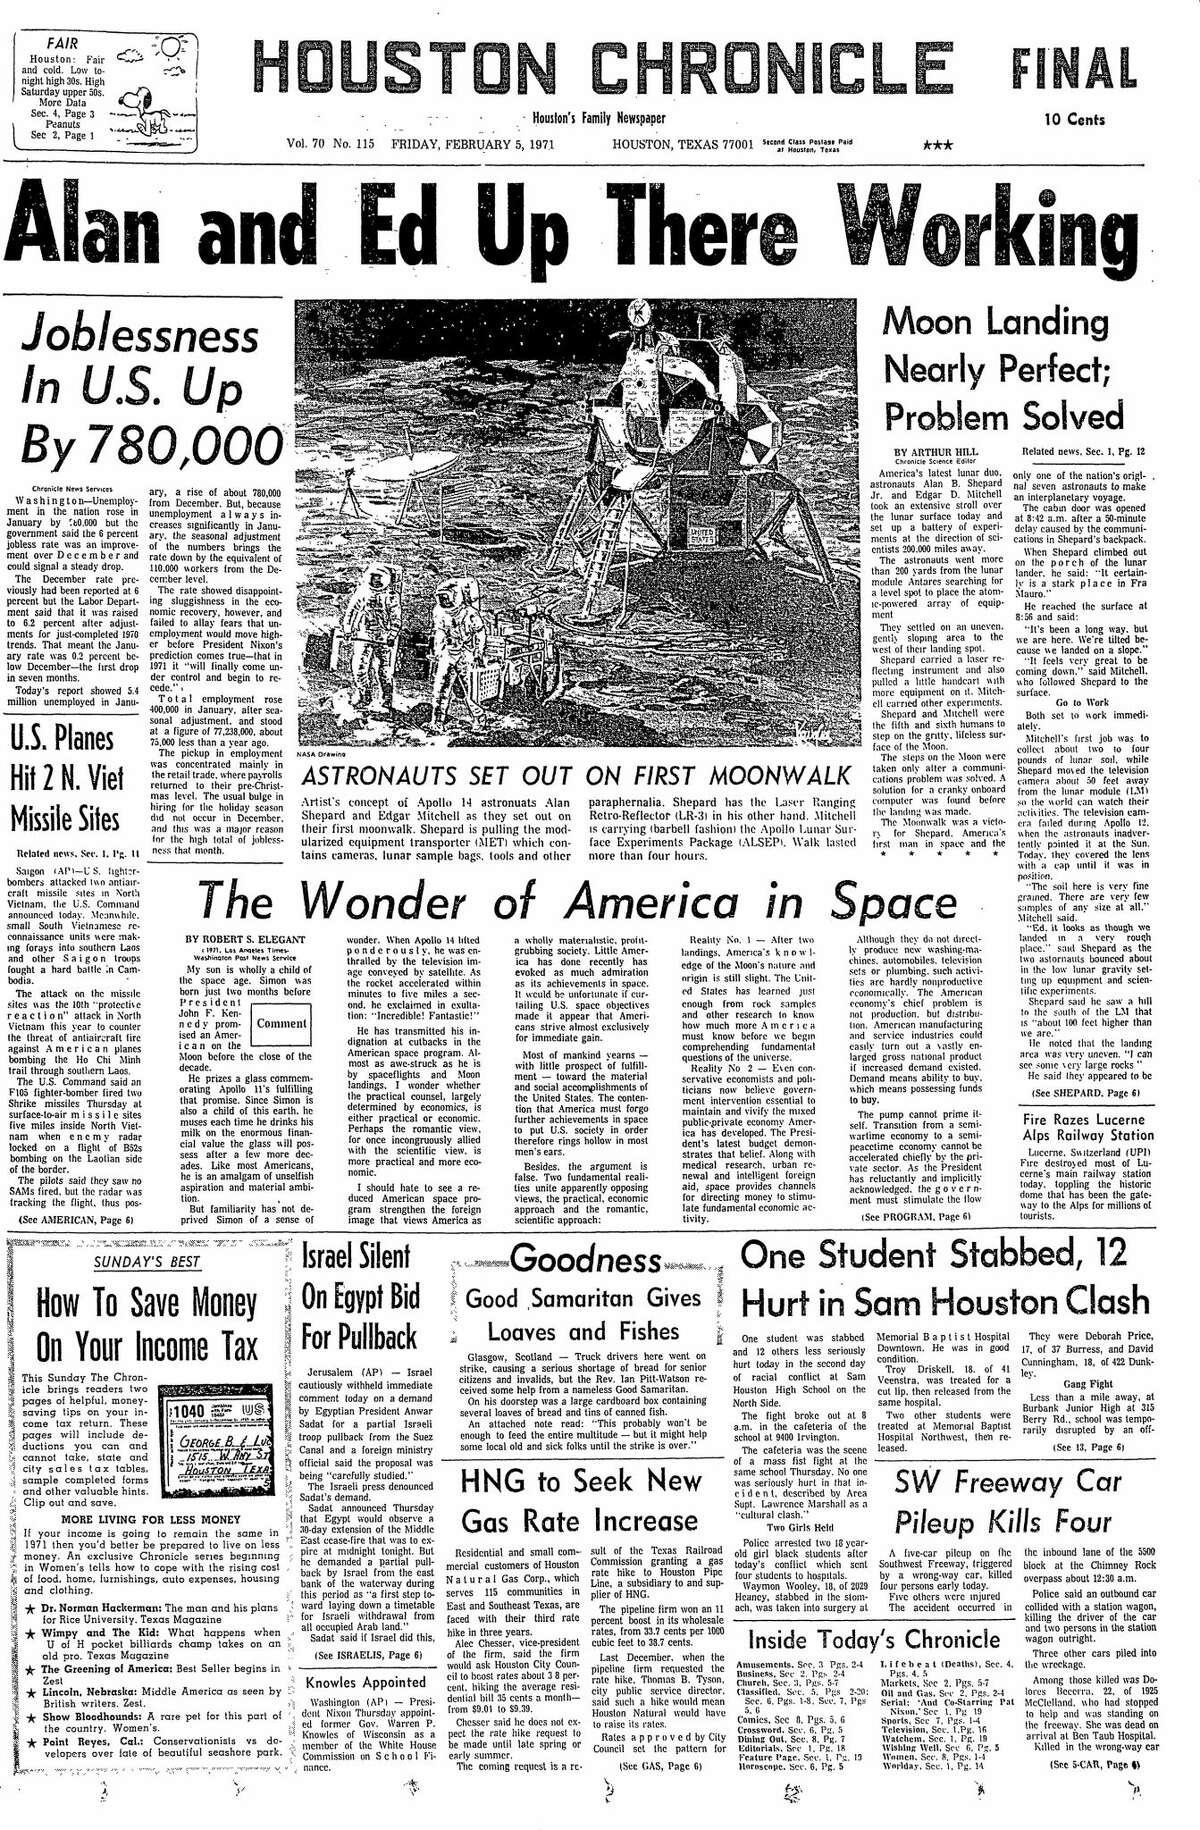 Houston Chronicle front page for Feb. 5, 1971.